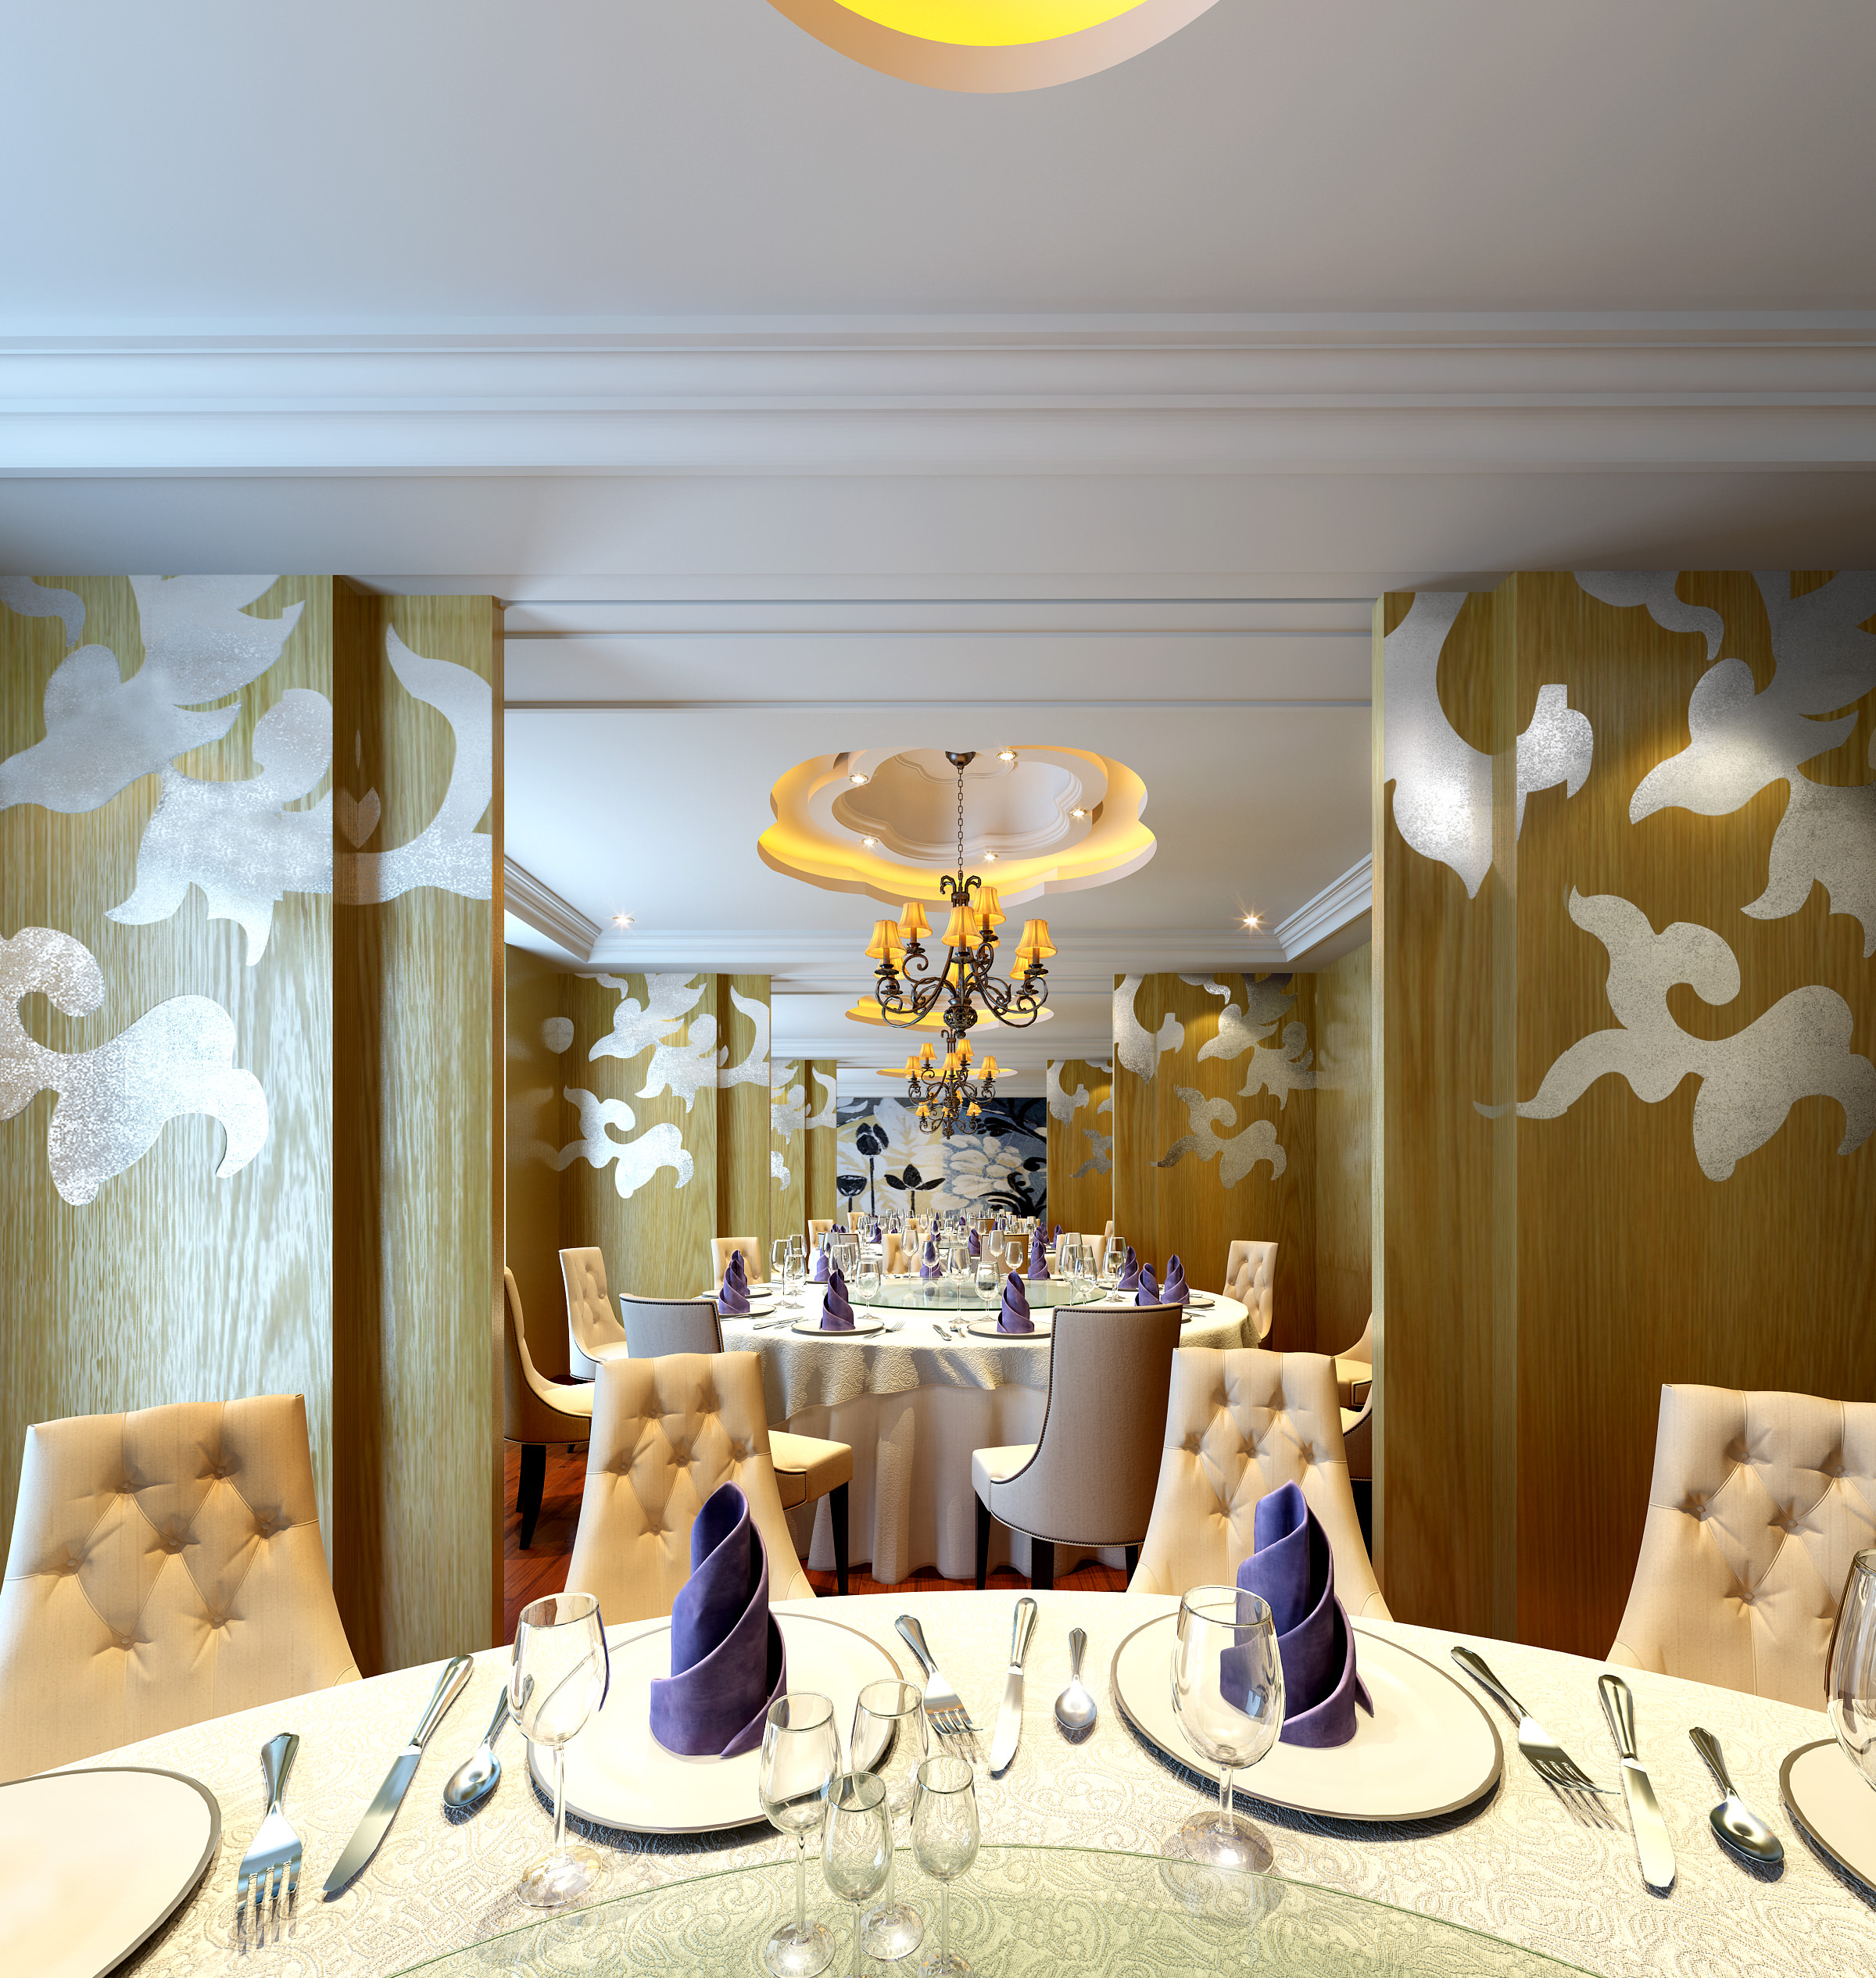 High-end Restaurant with Exquisite Wall Decor 3D model MAX